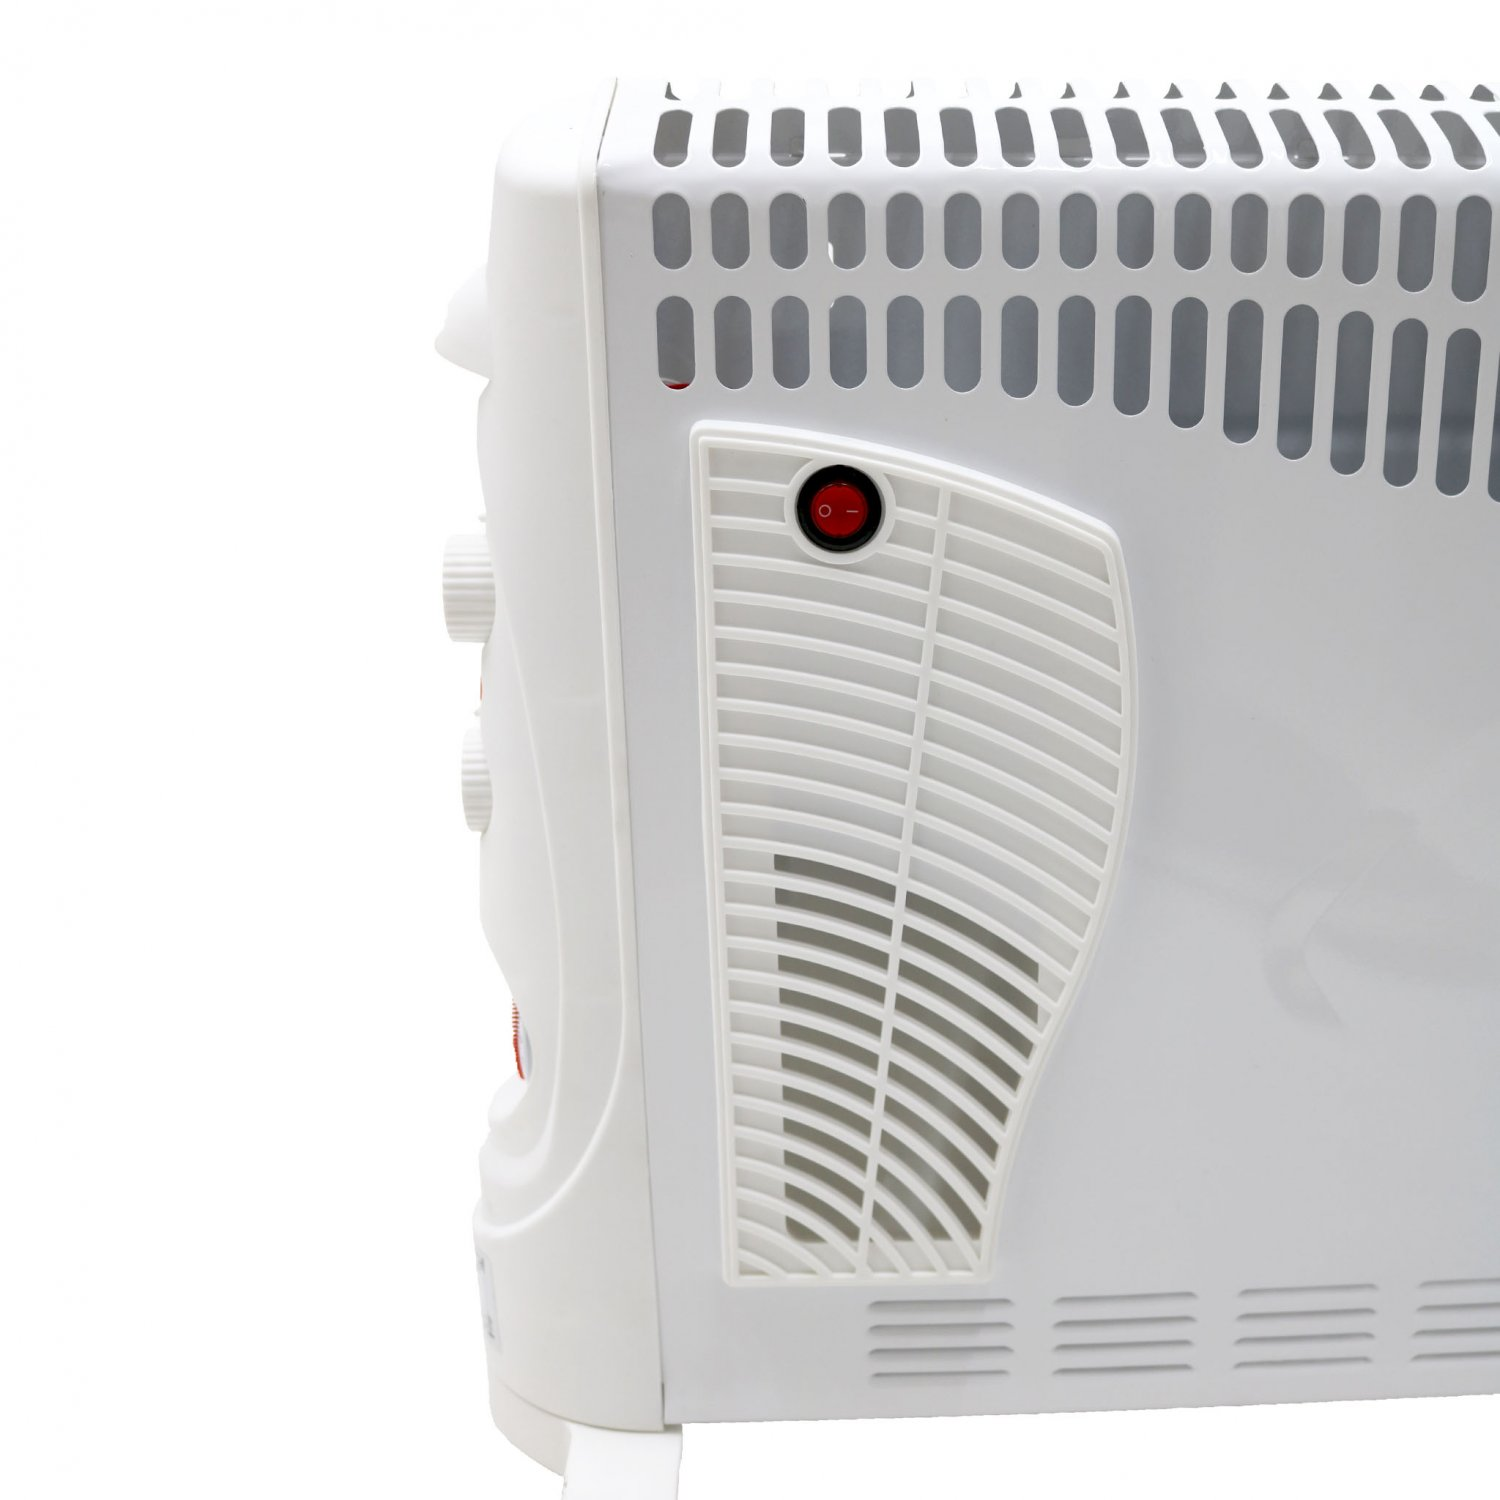 2kw convector heater 3 heat settings turbo and timer for Heat setting for home